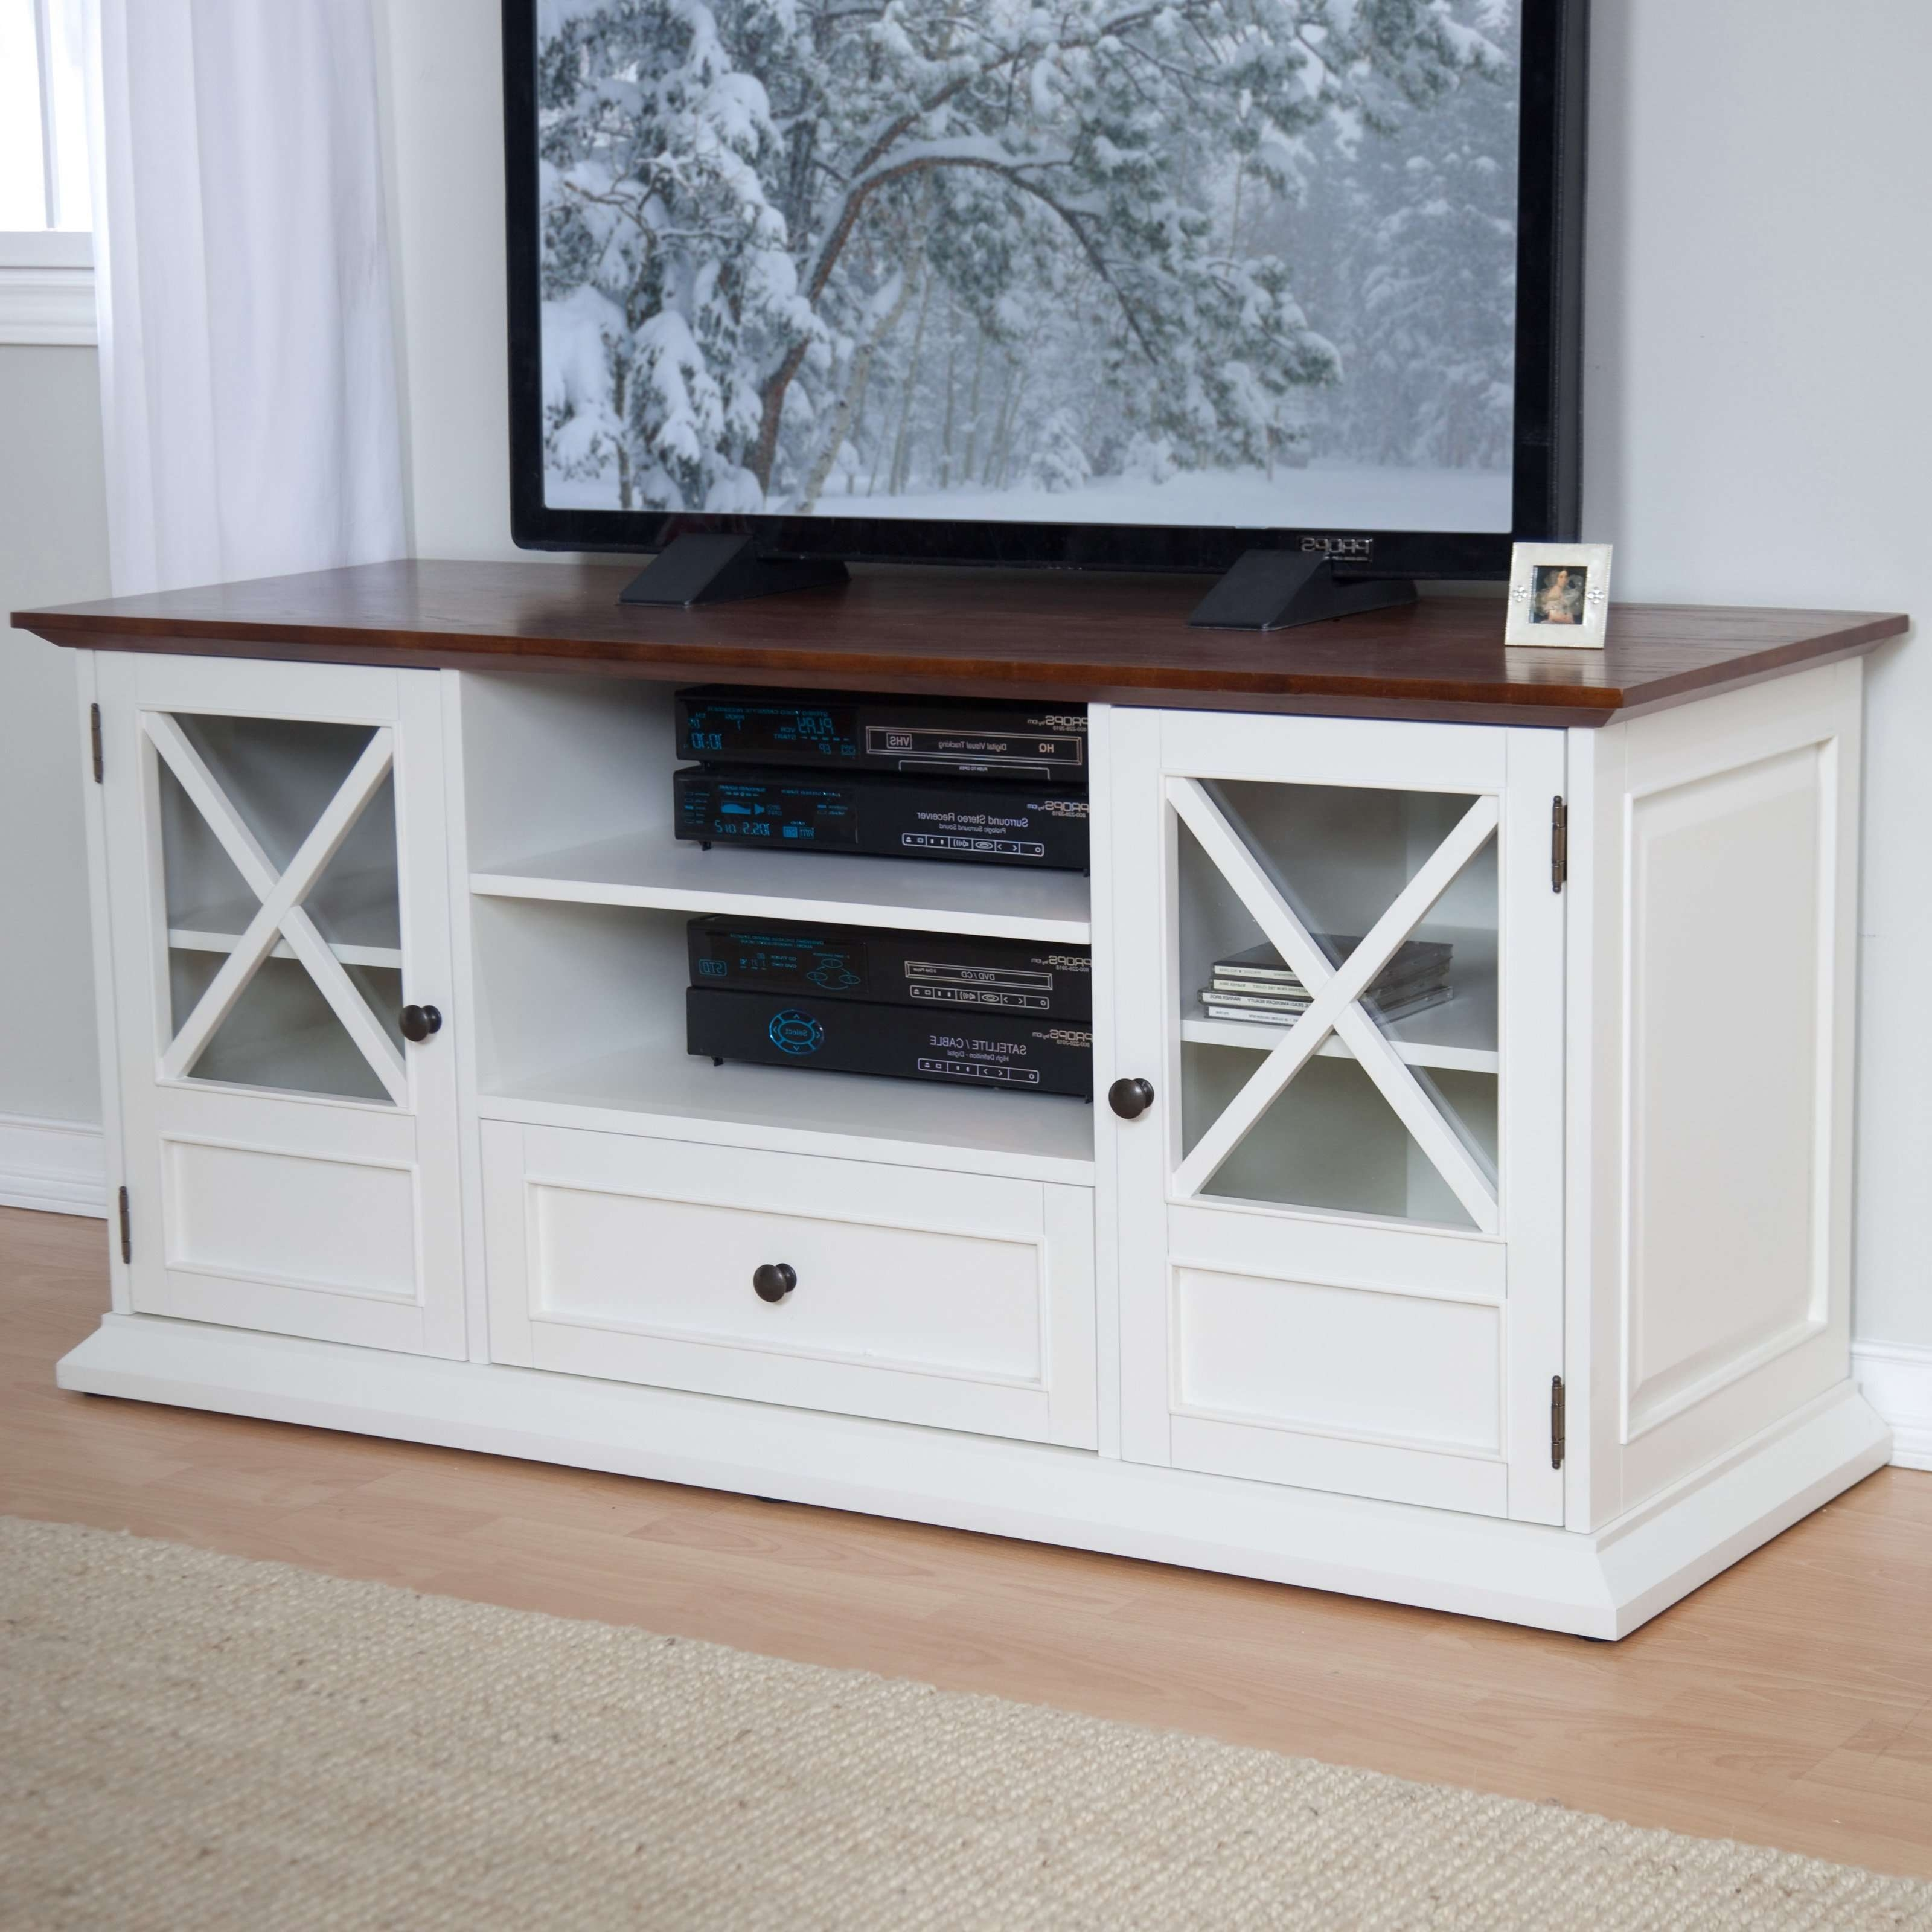 Tv Stands & Entertainment Centers | Hayneedle With Regard To Cream Corner Tv Stands (View 13 of 15)